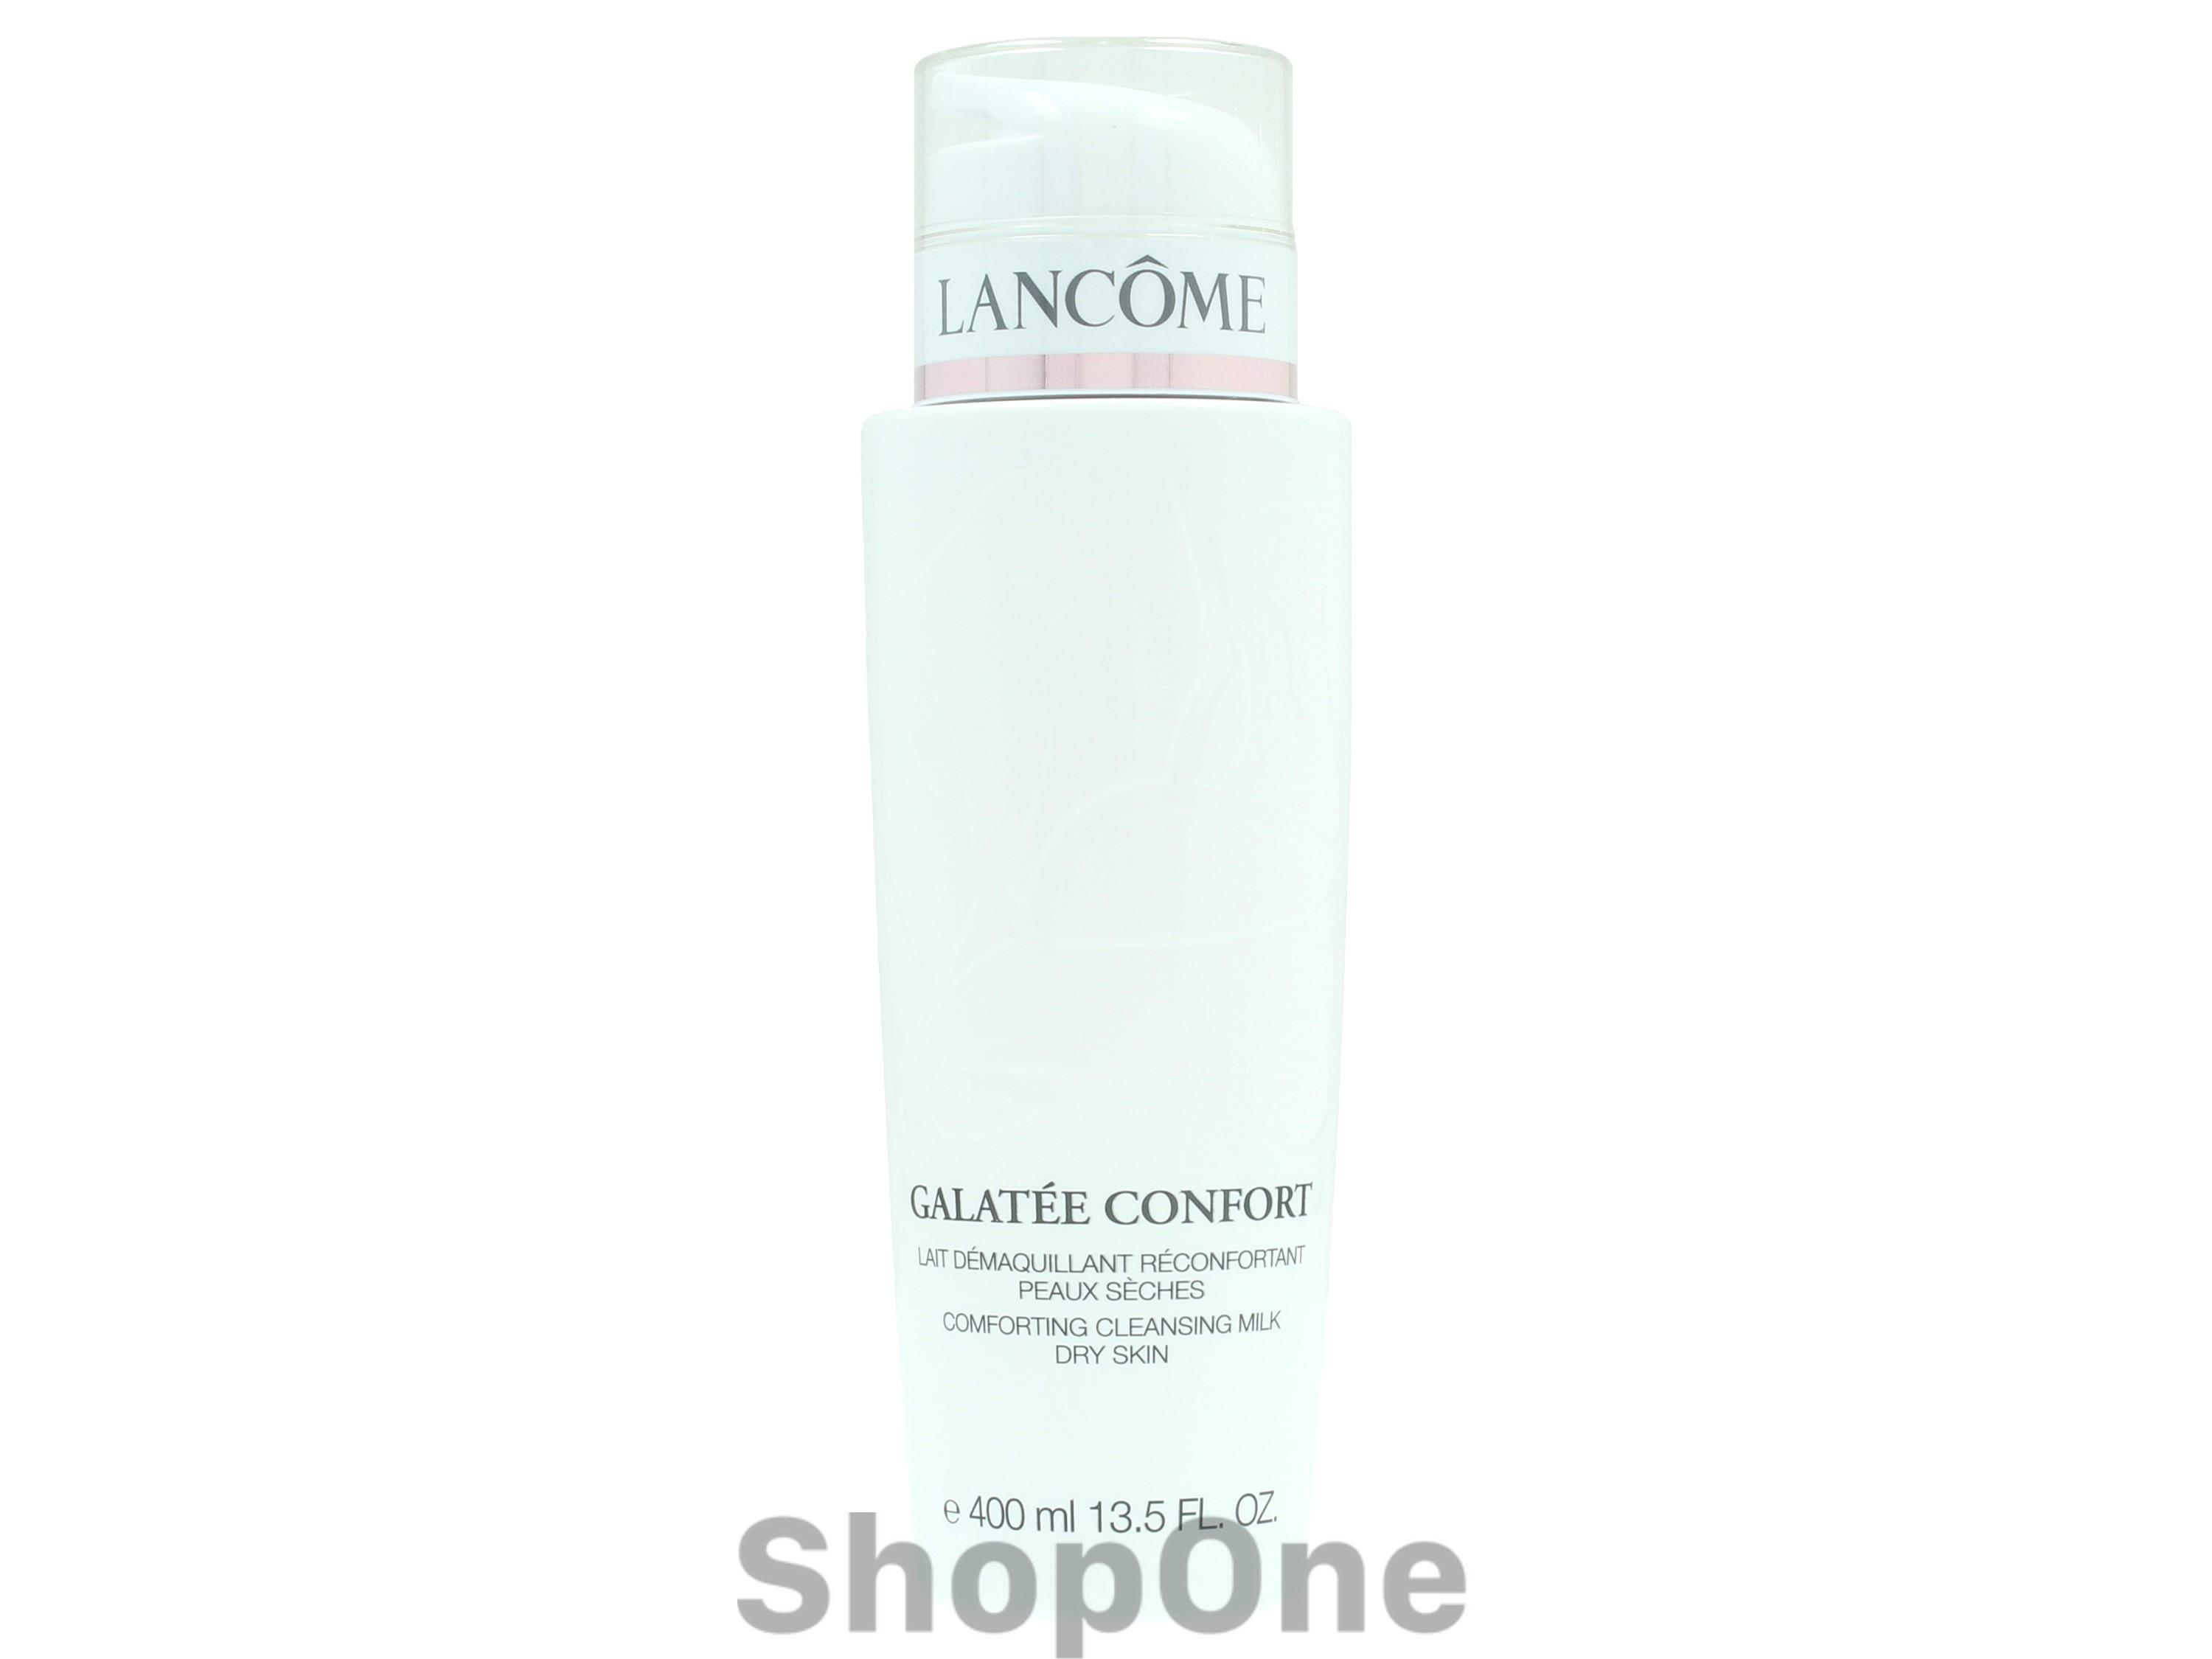 Image of   Galatee Confort Comforting Remover Milk 400 ml fra Lancome